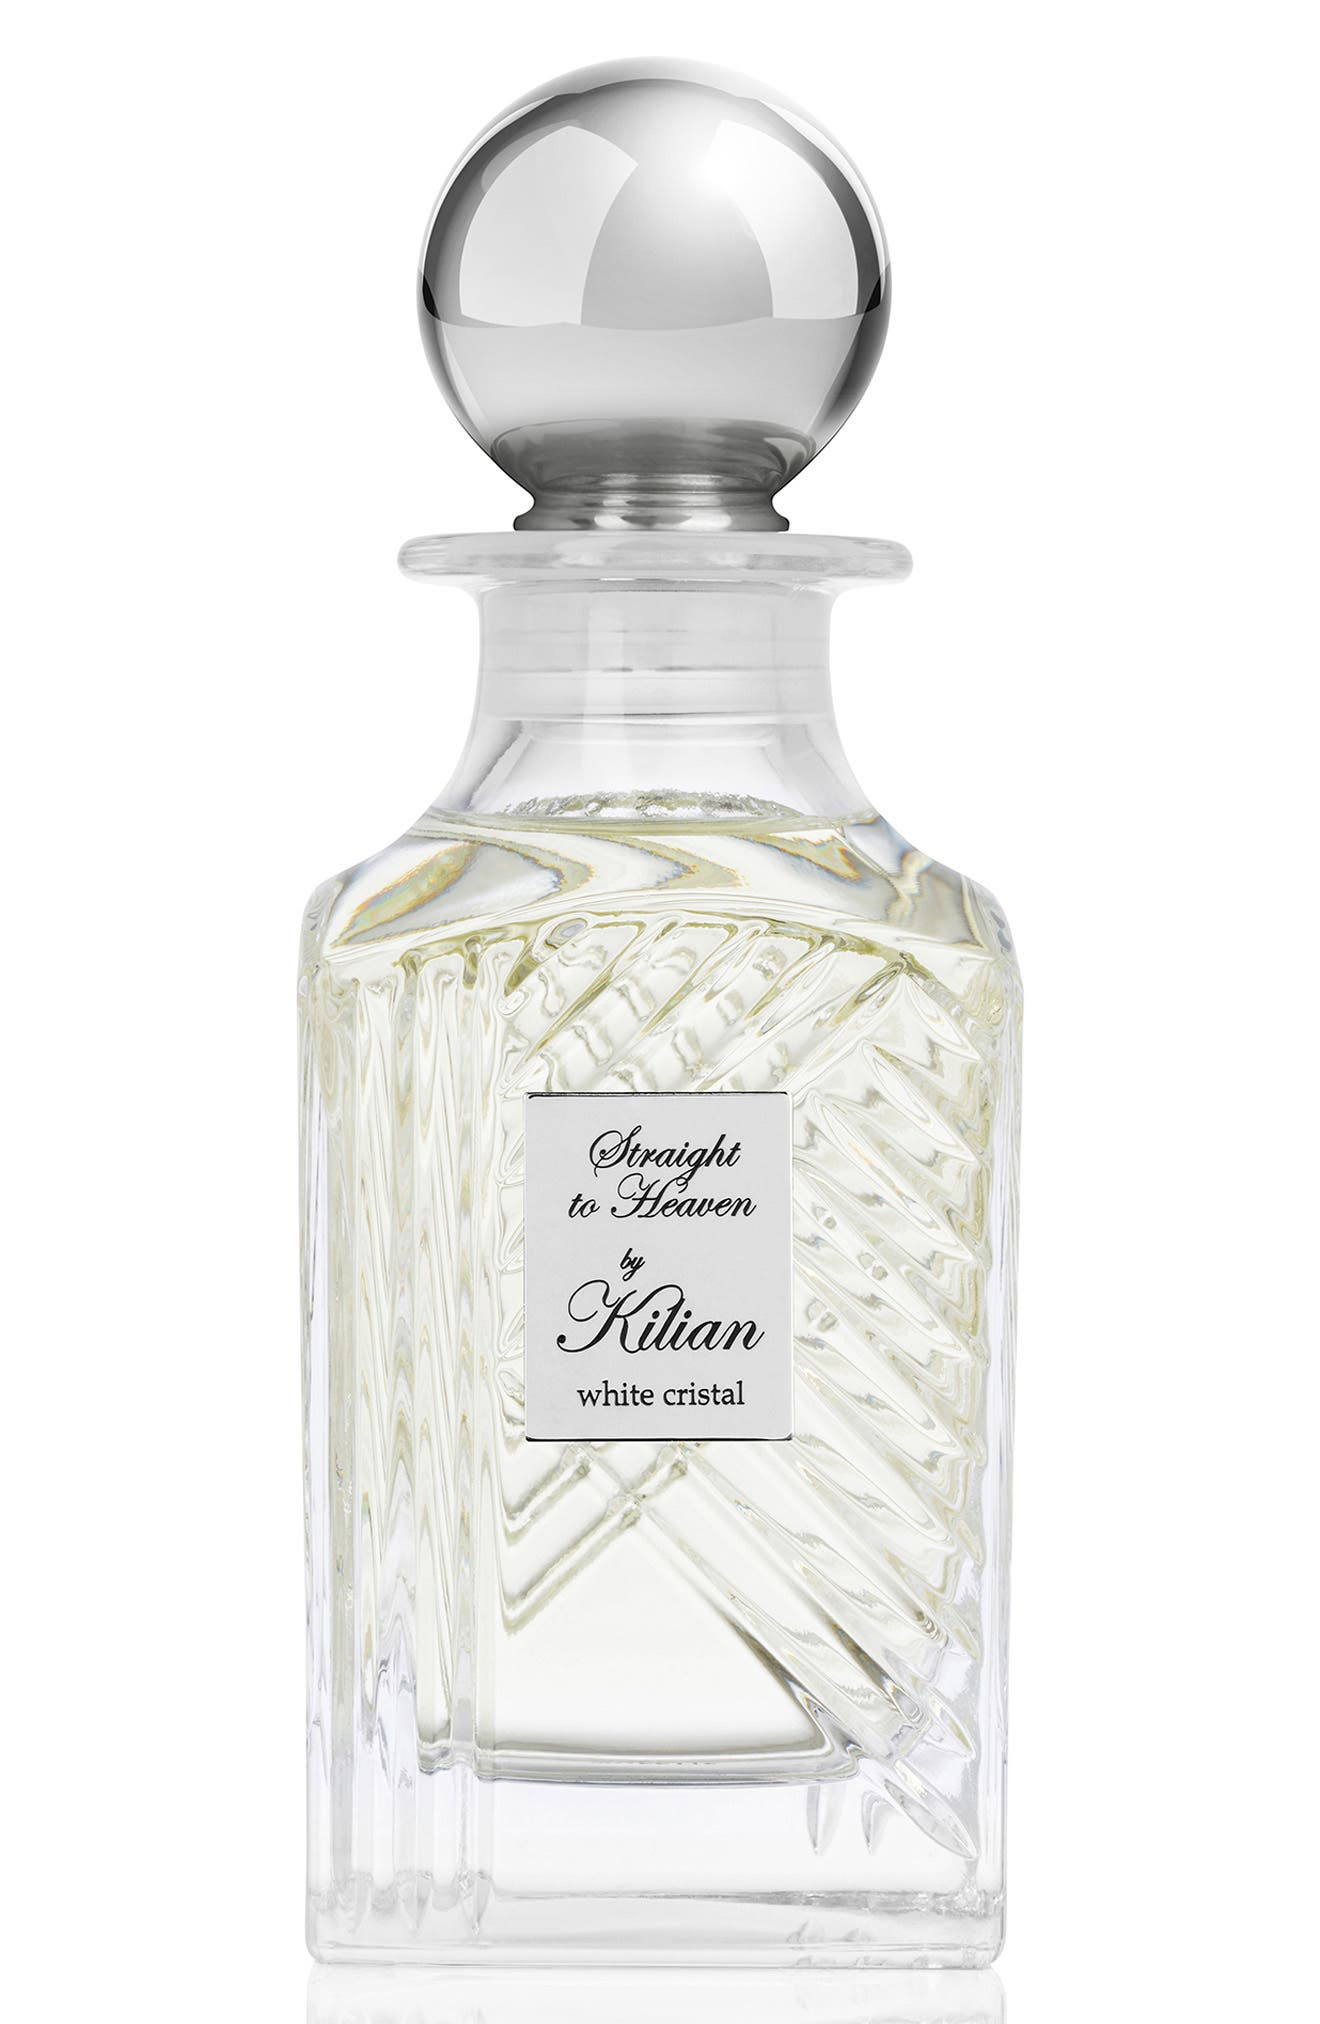 KILIAN 'L'Oeuvre Noire - Straight to Heaven, white cristal' Mini Fragrance Carafe, Main, color, NO COLOR